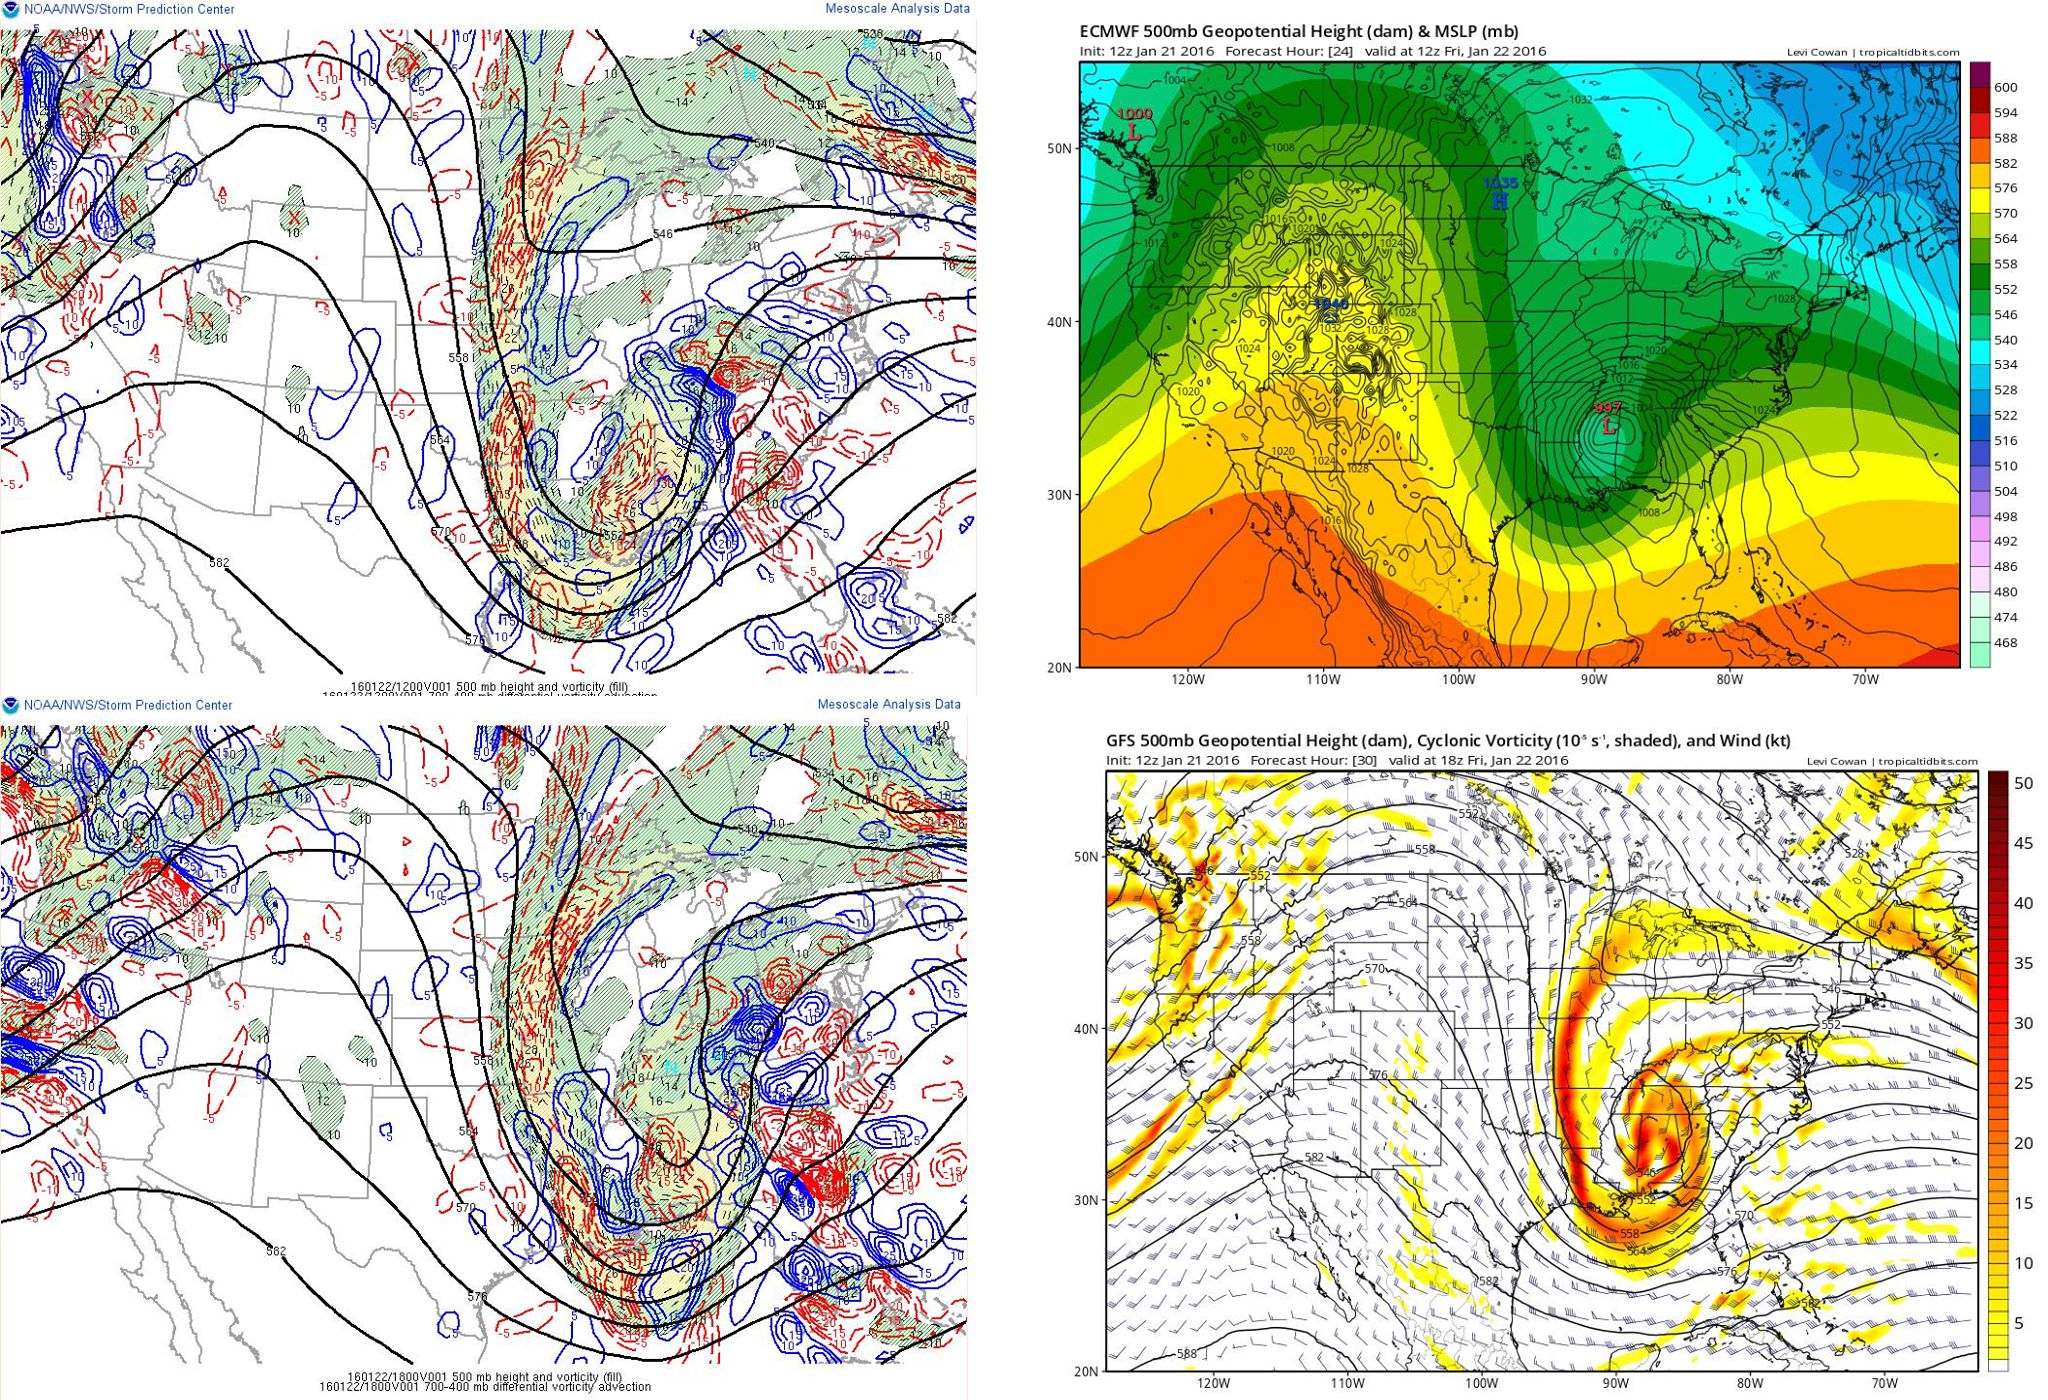 The GFS and the European Model from 12z Thursday January 21st, in comparison with actual observations. Both the GFS and the Euro cut off the 500mb low way too early, and also were showing way too much confluence to the northeast. This led them to show much lower heights (less amplification) in the East compared to the actual observations.